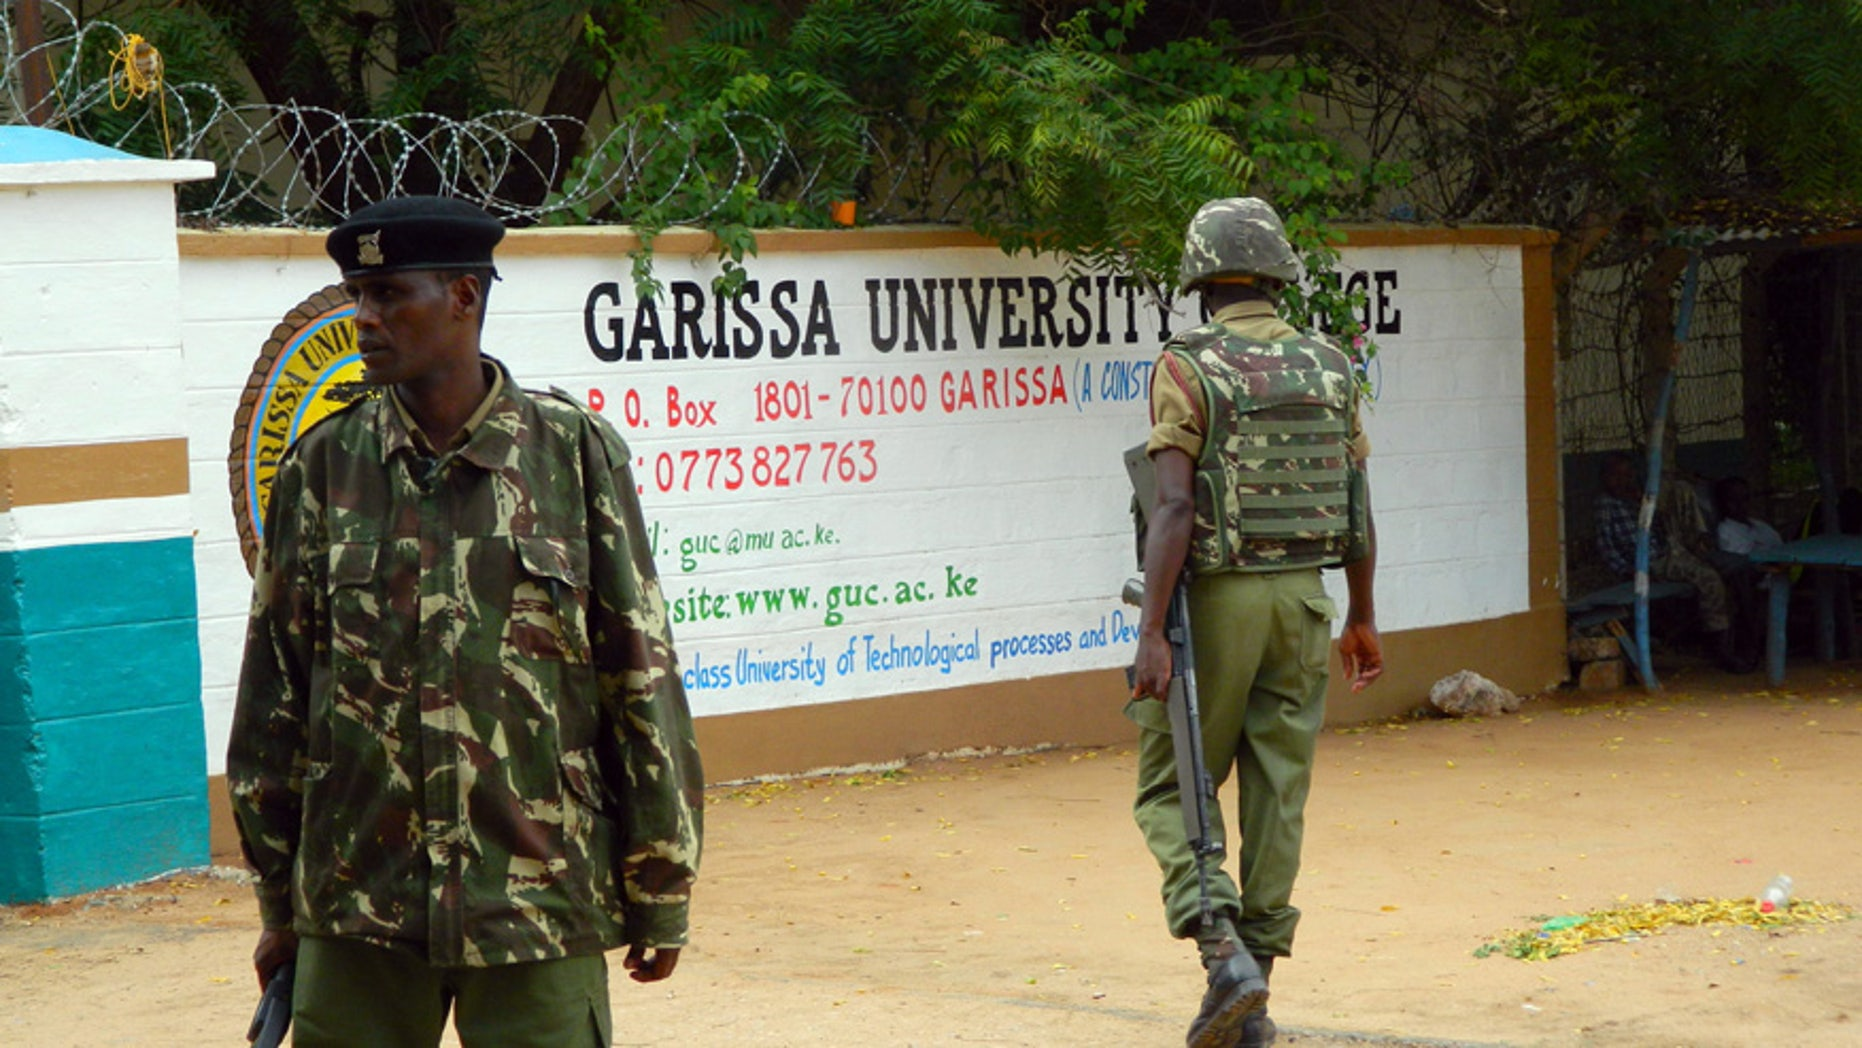 Jan. 4, 2016: Armed security officers guard the entrance of Garissa university college, in Garissa, Kenya.